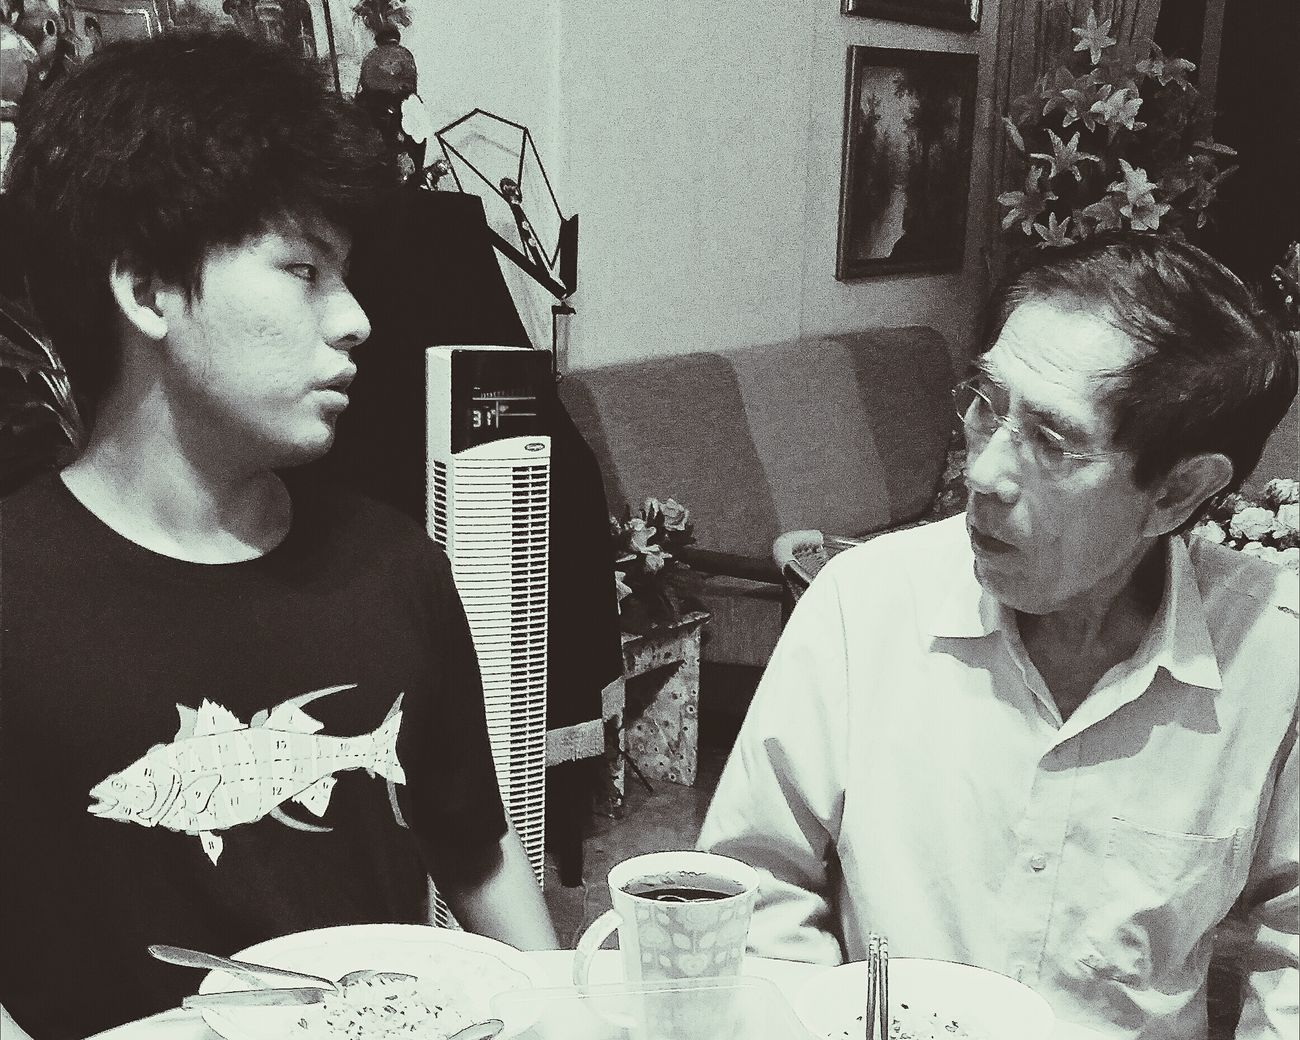 Son turned 19 7 July Birthday Dinner Birthday Celebration Bnw Capture The Moment My Father Grandson Grandfather Eyeem Photography EyeEm Gallery EyeEm Bnw Singapore